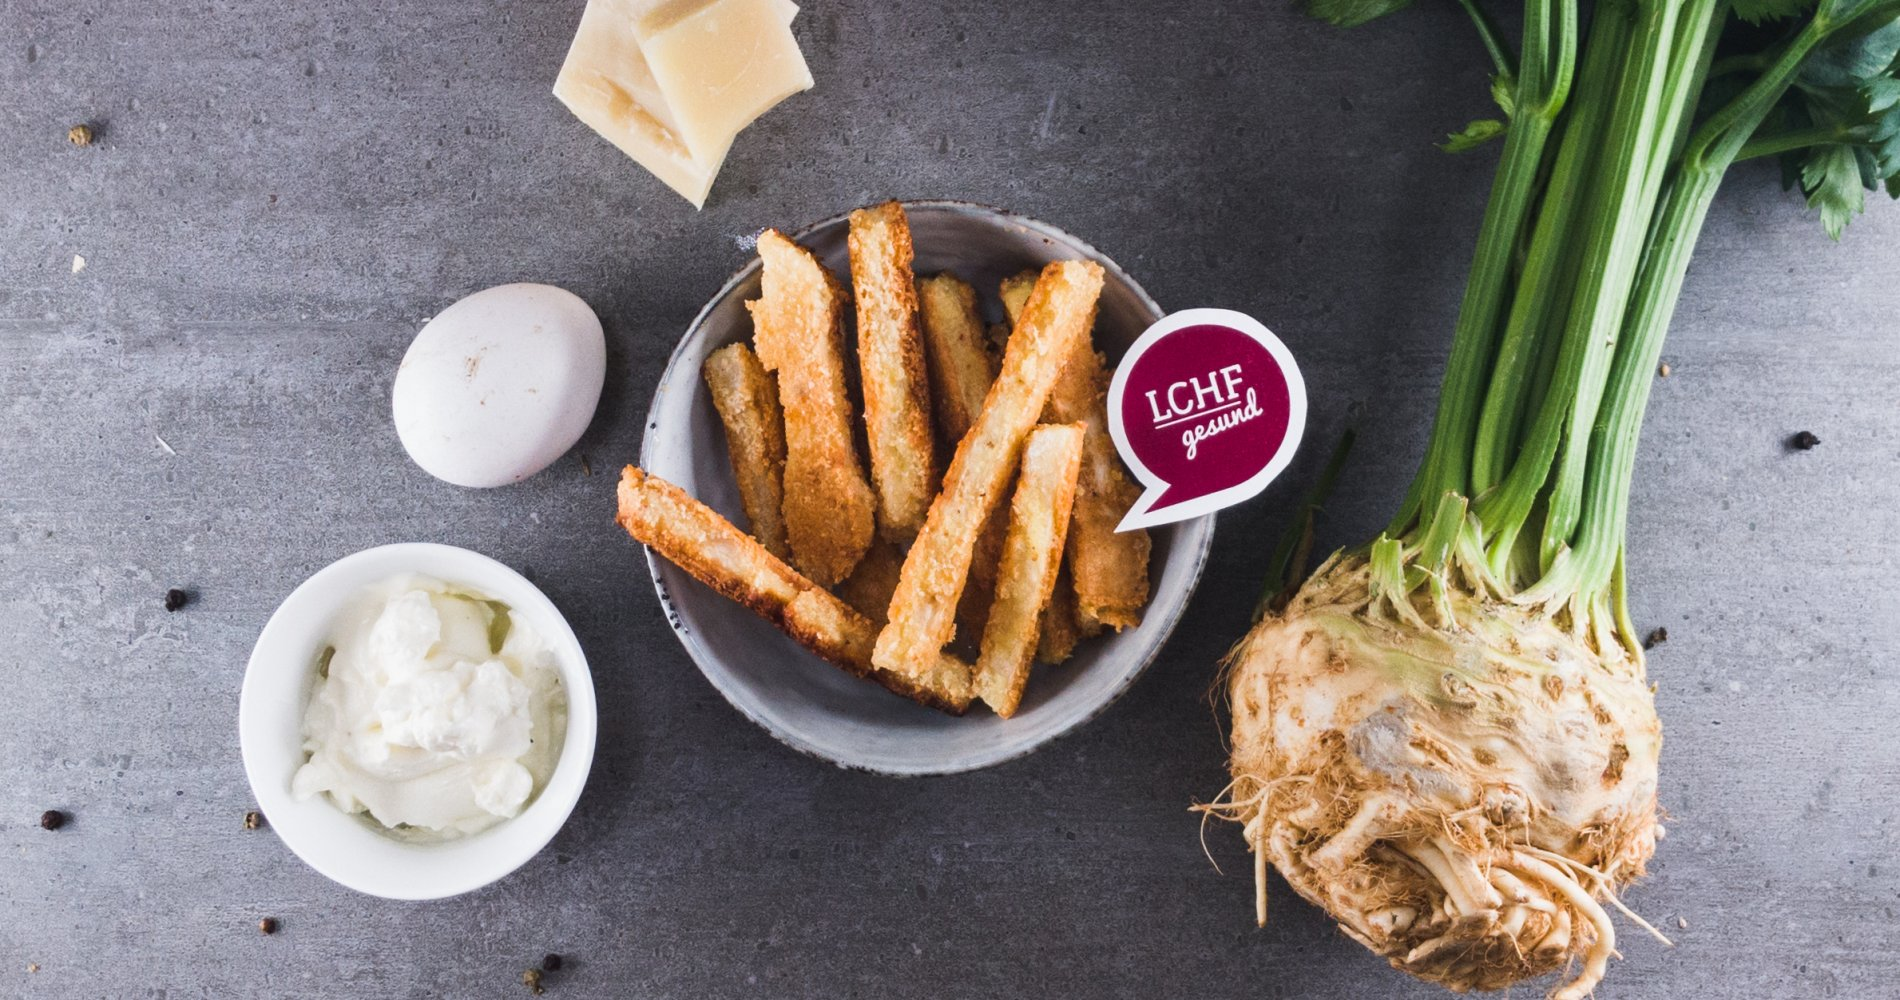 Rezept Low Carb: Sellerie-Parmesan-Sticks - LCHF-gesund.de